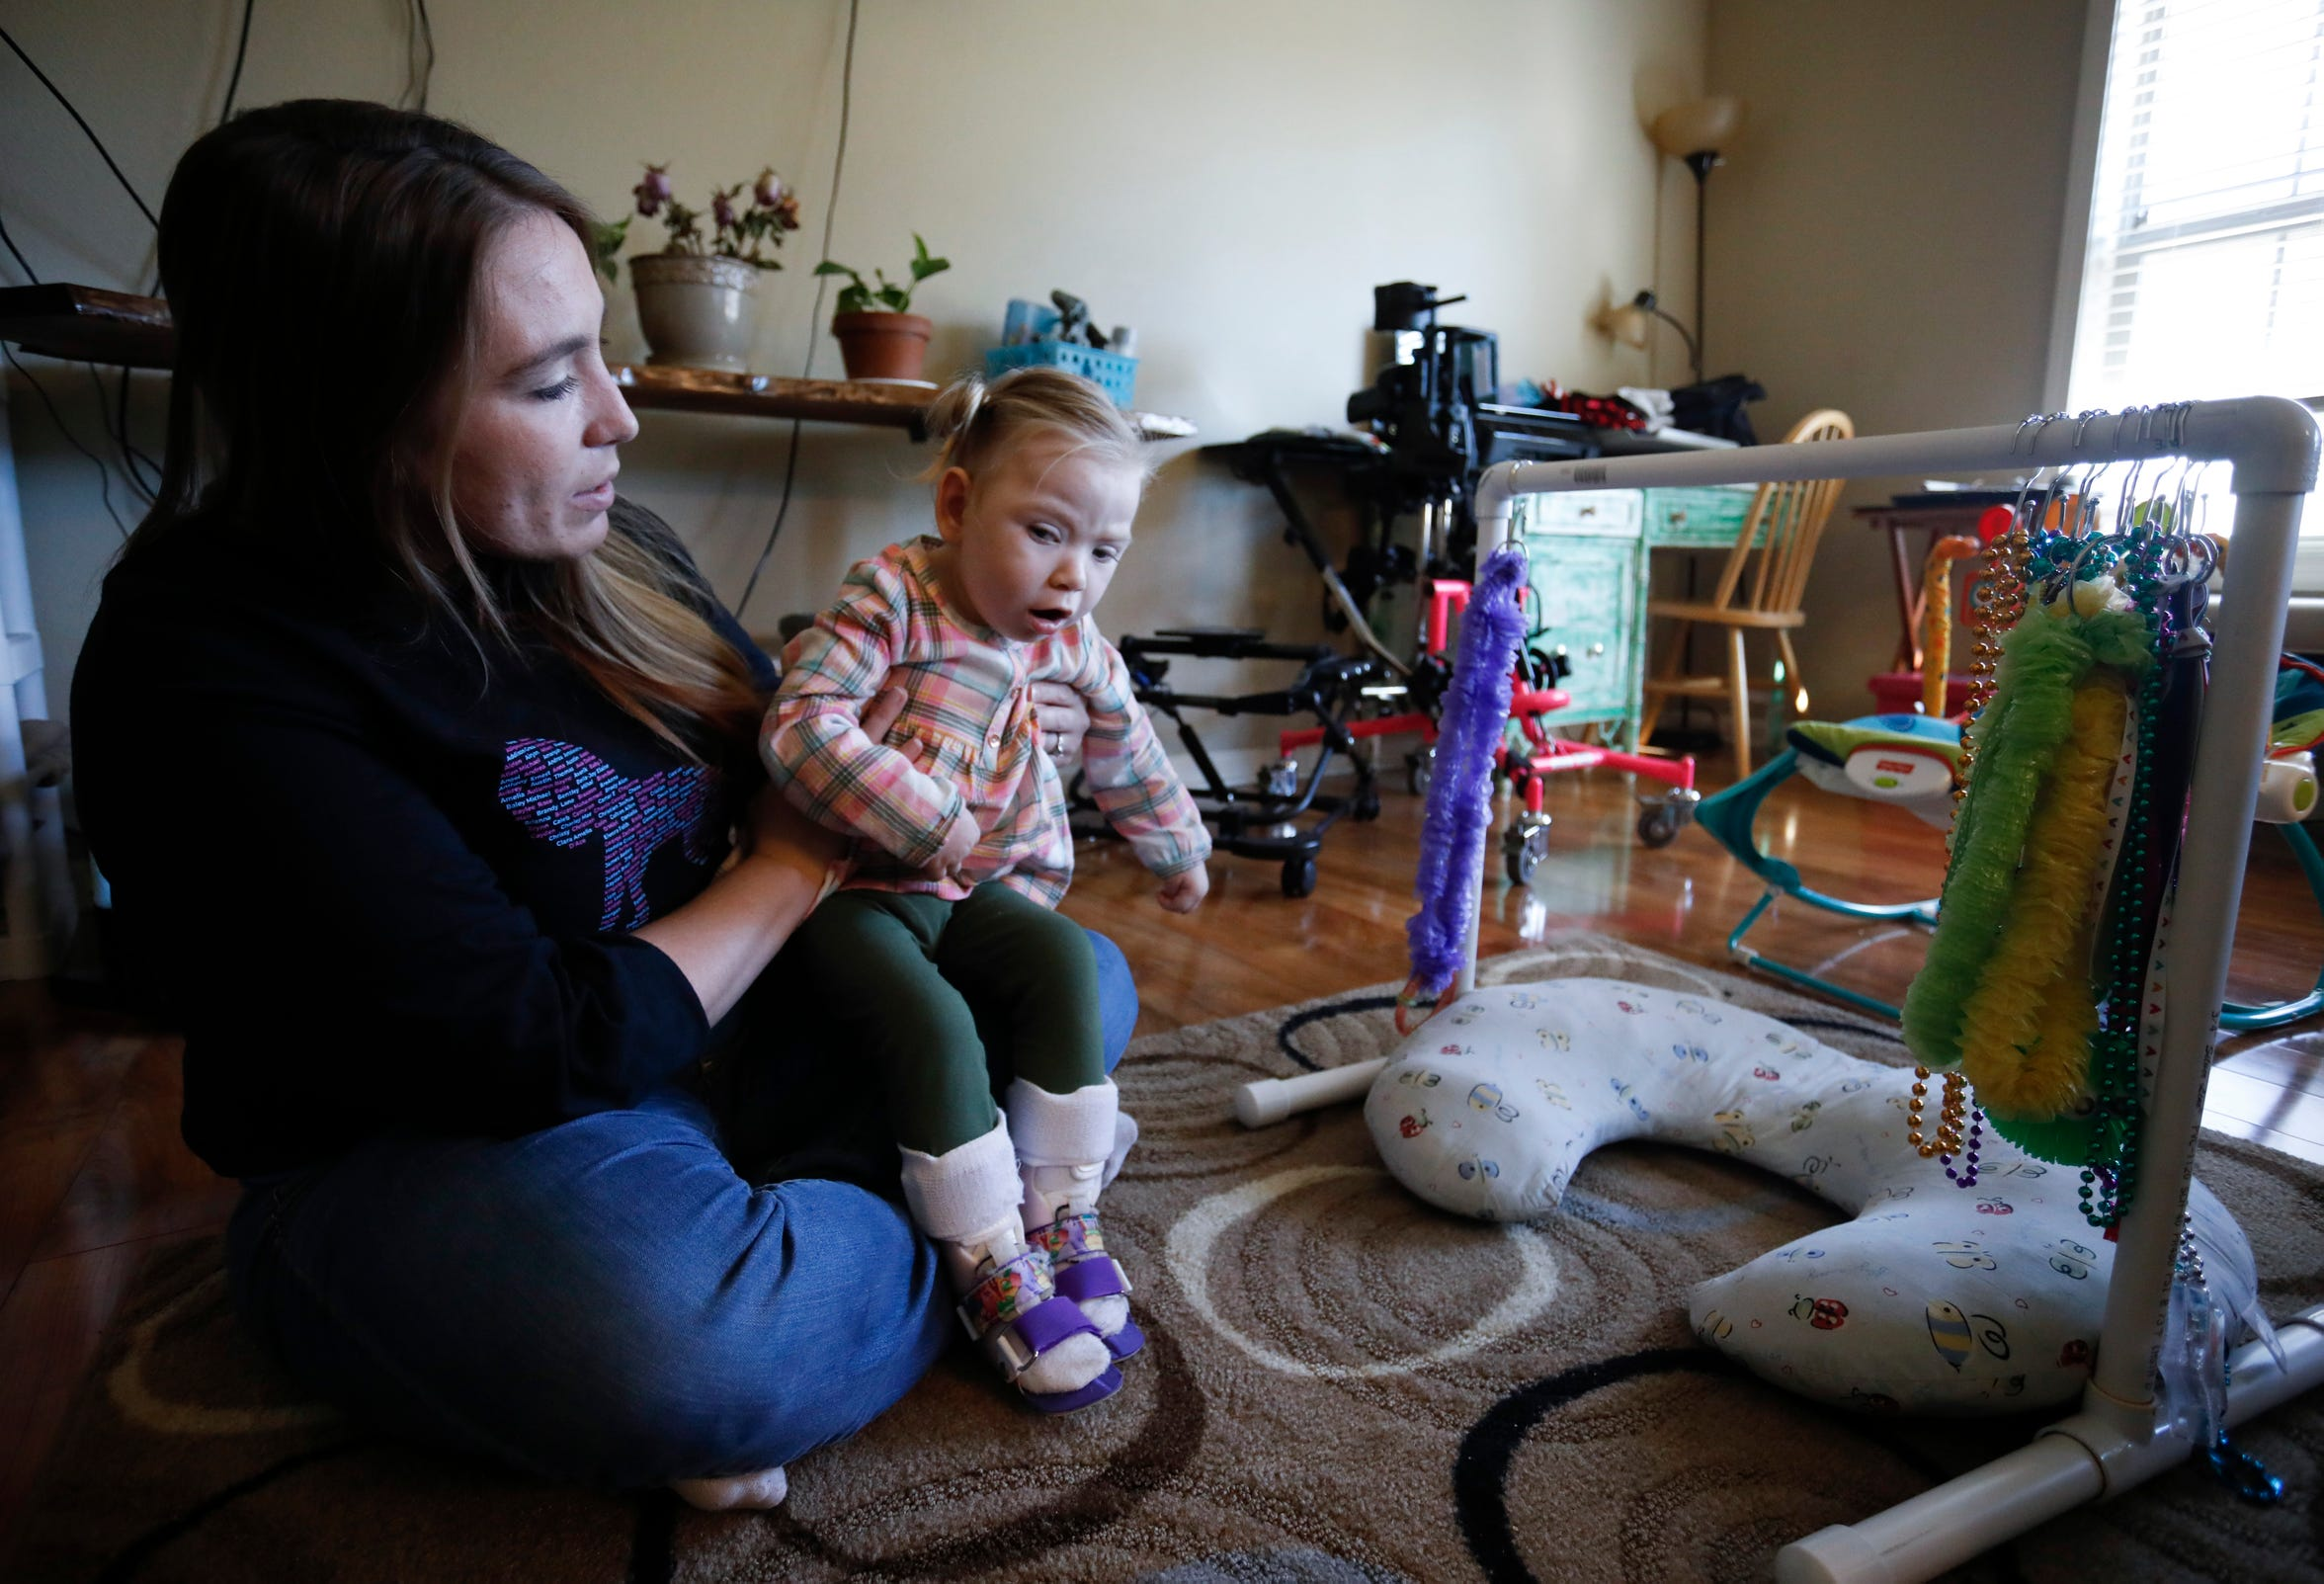 Courtney Ernst and her two-year-old Cyrina were helped through Share Your Christmas last year.